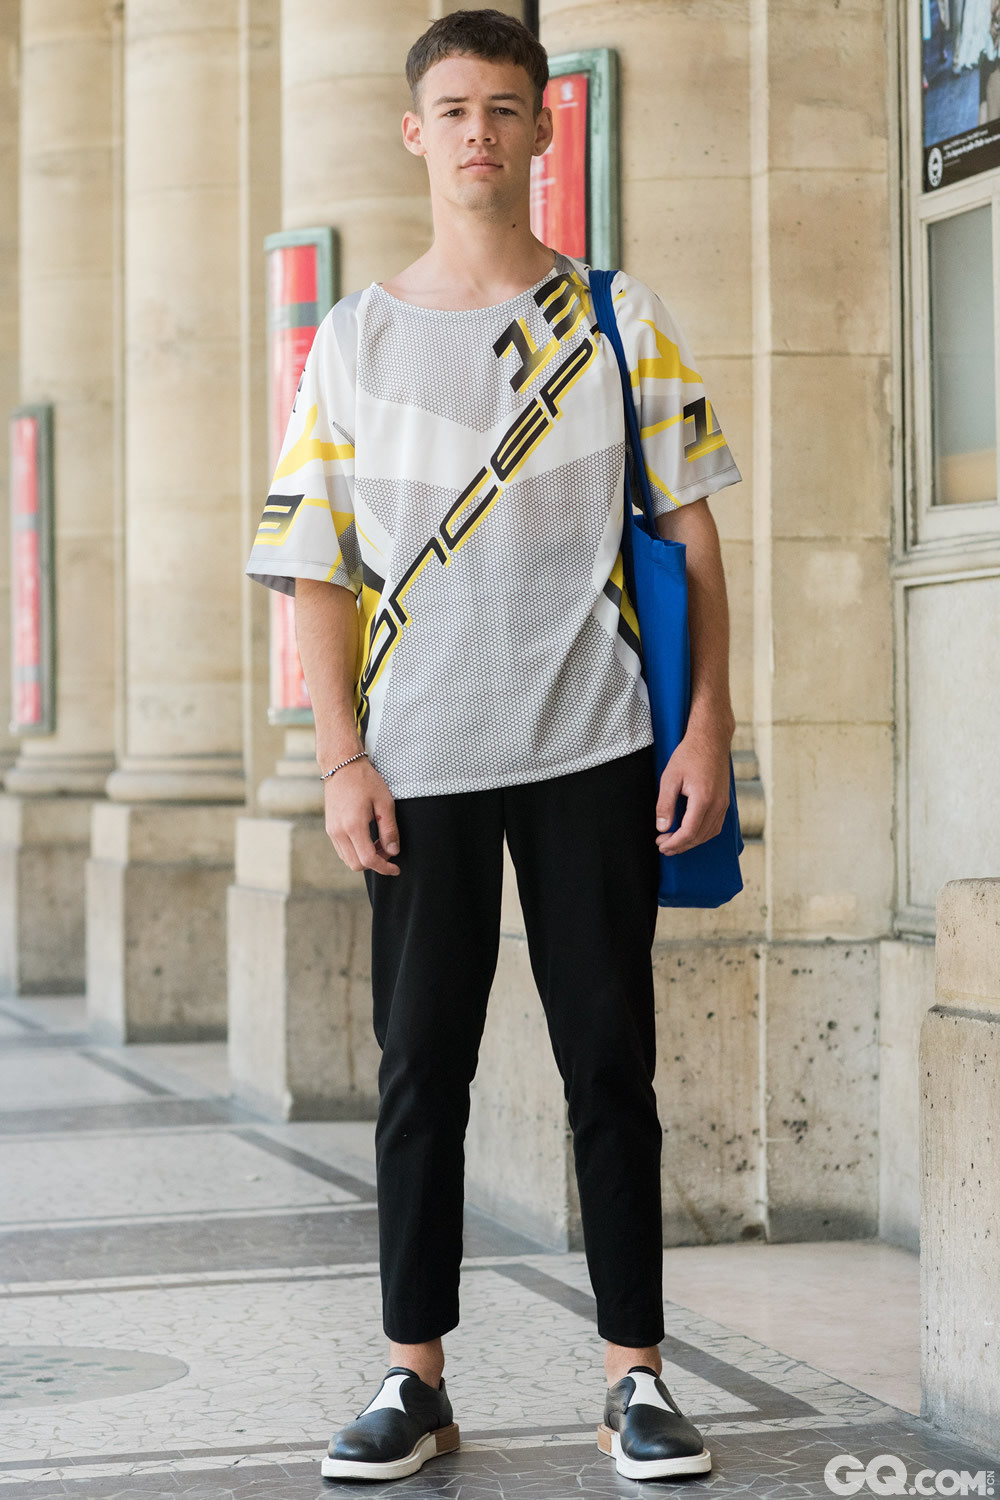 Hugo Shirt: Etudes Studio Trousers: COS Shoes: Moby Bag: Etudes Studio  Inspiration: I am French and I like Etudes Studio a lot. Today they are showing and therefor they inspired me.  (我是法国人,非常喜欢Etudes Studio,今天是他们的秀也恰好赋予了我灵感。)